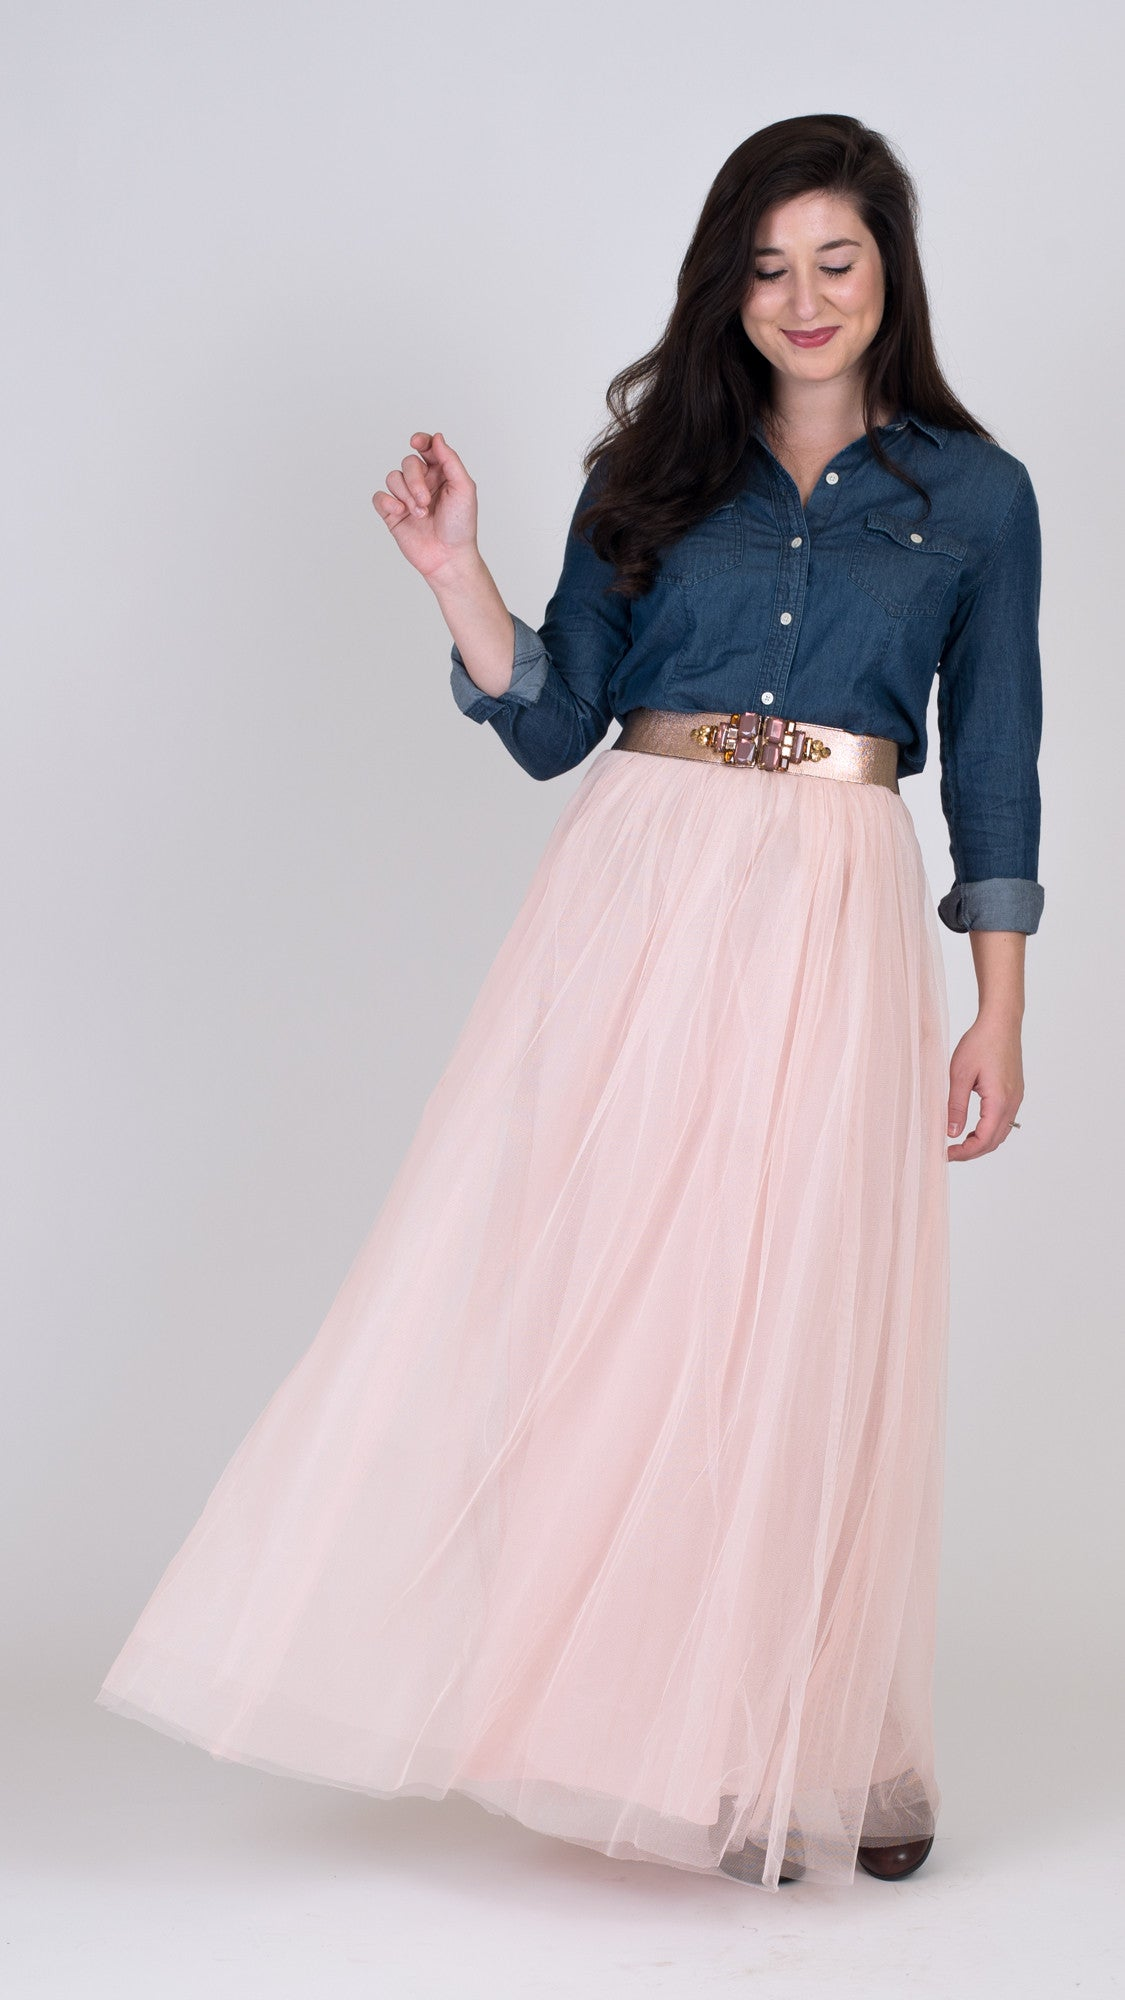 pink tulle maxi skirt paired with chambray top